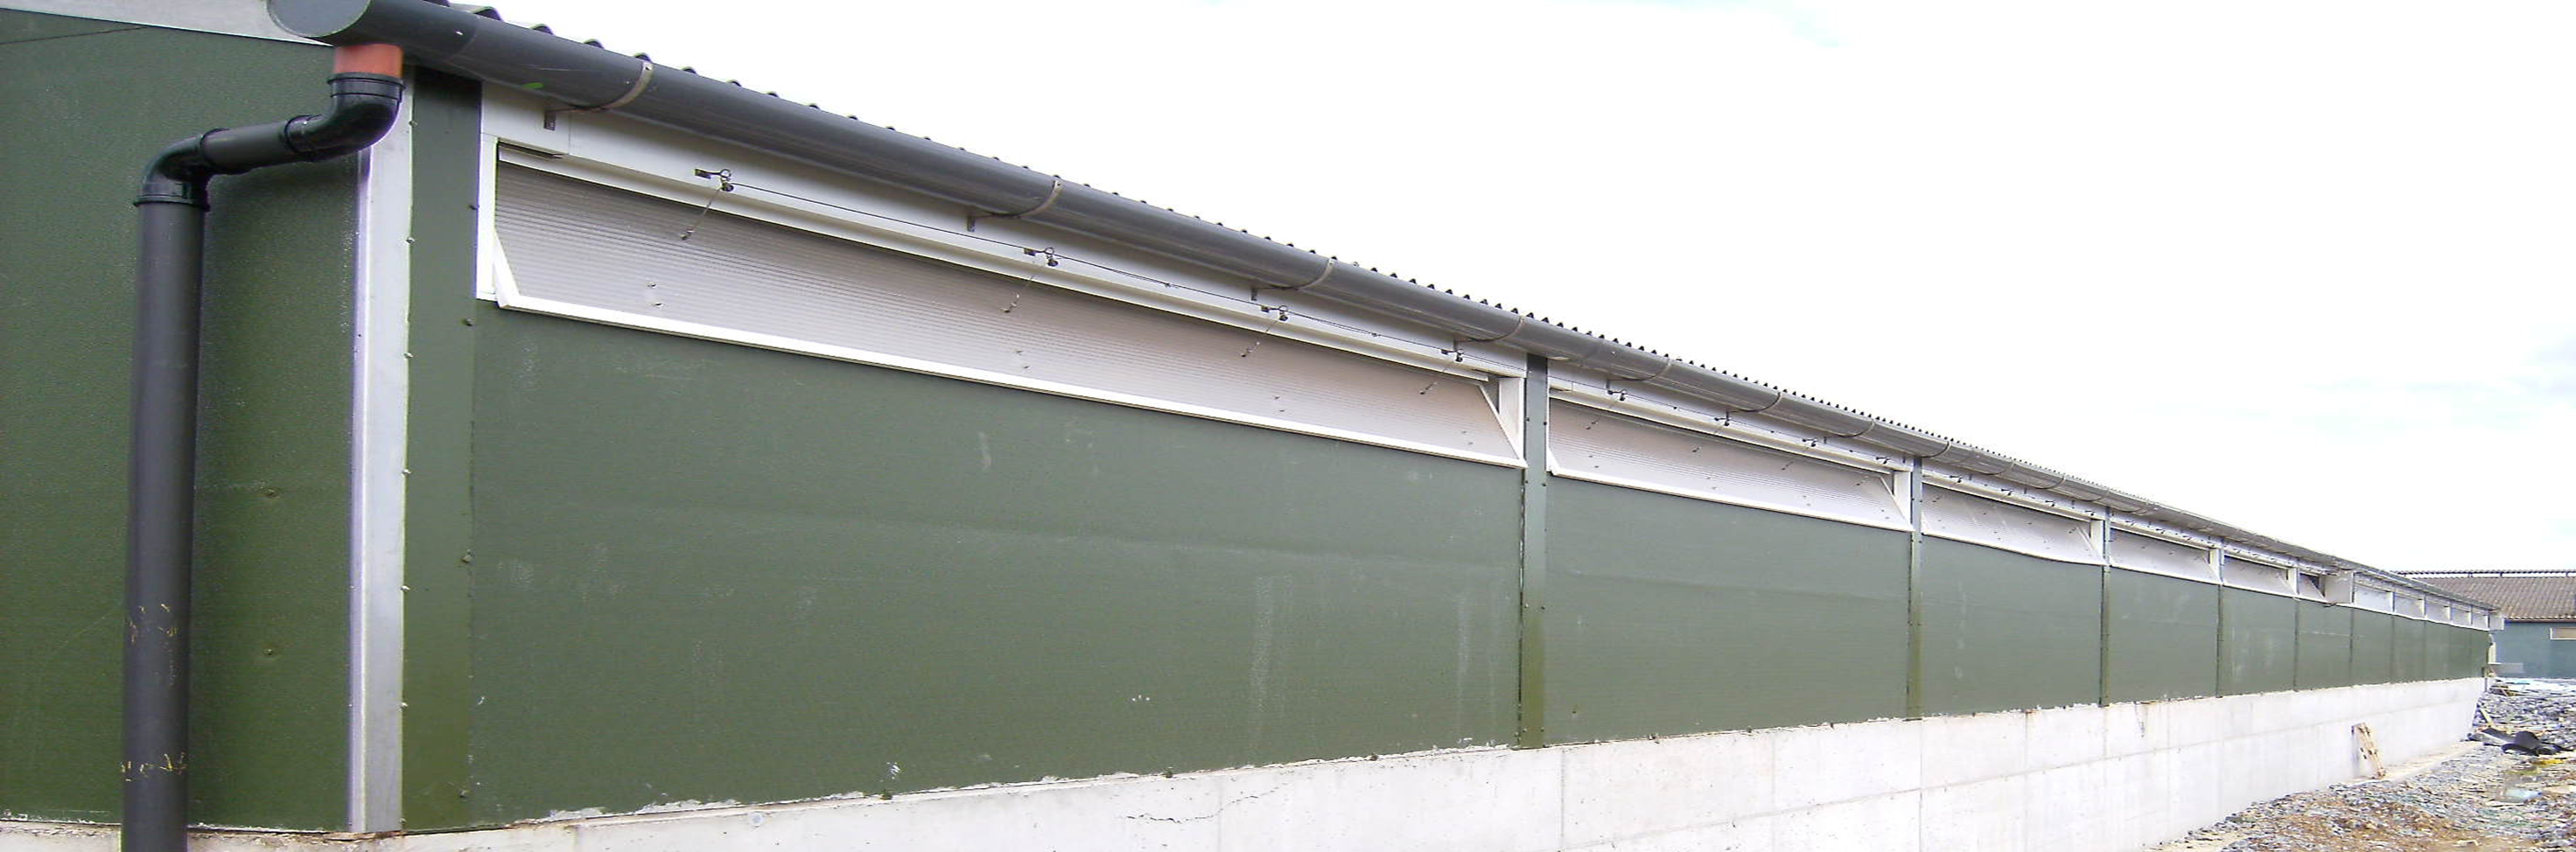 Prefab Insulated Wall Panels : Prefabricated insulated wall panels jetwash